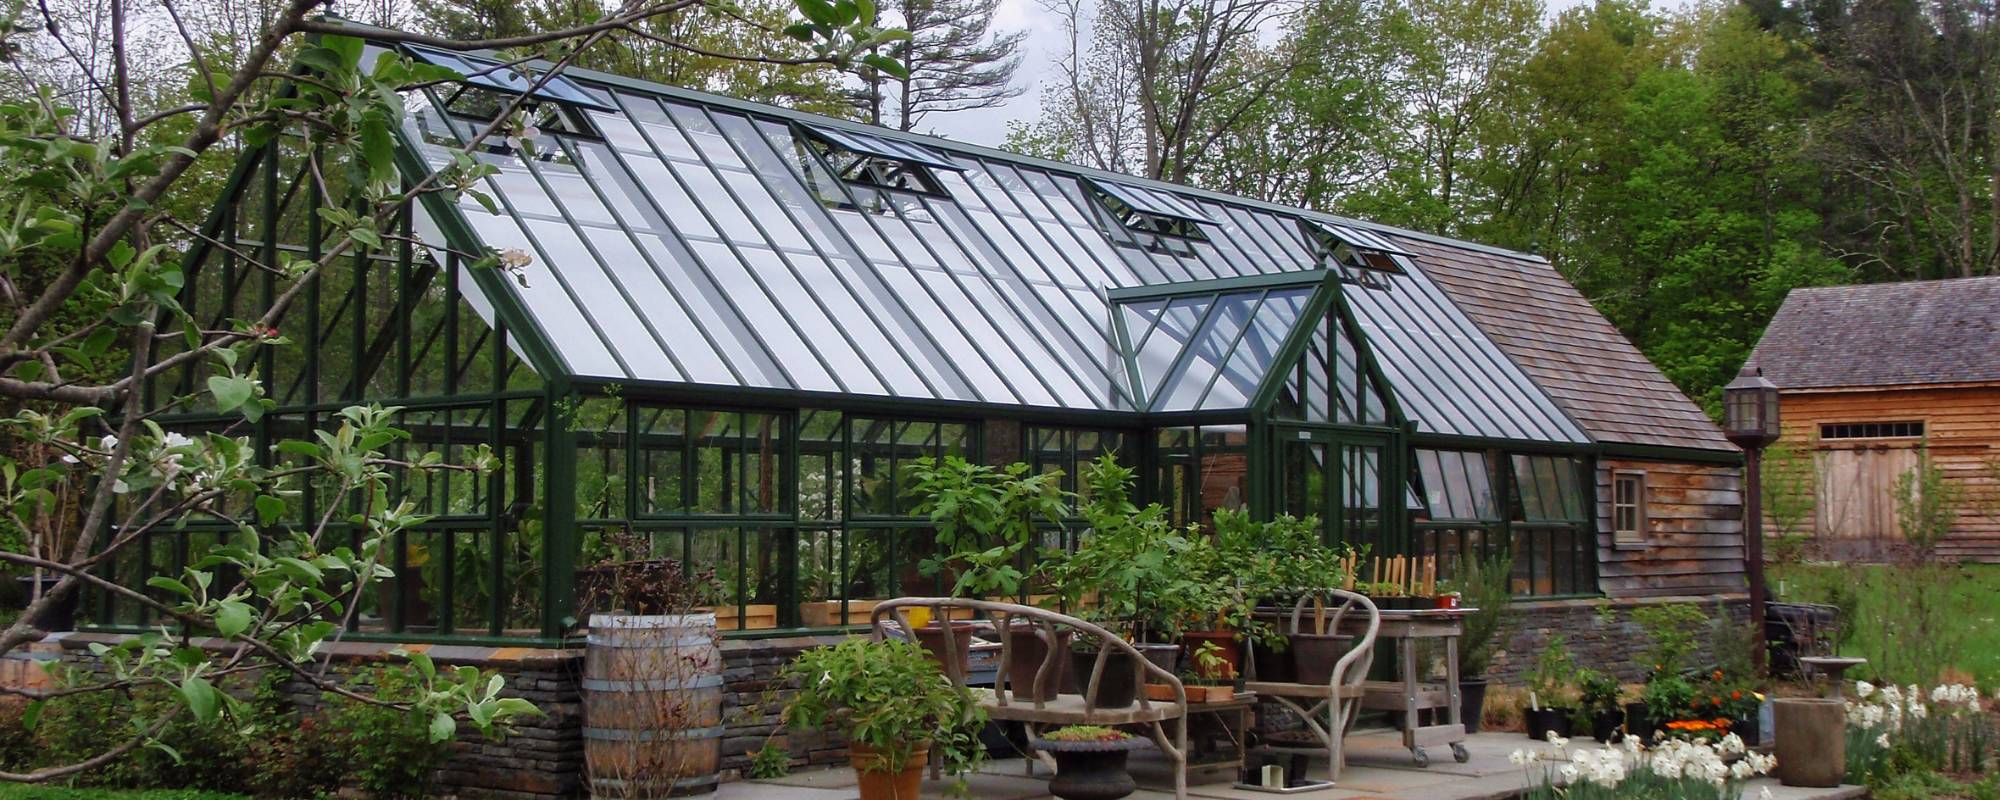 how to build a large greenhouse